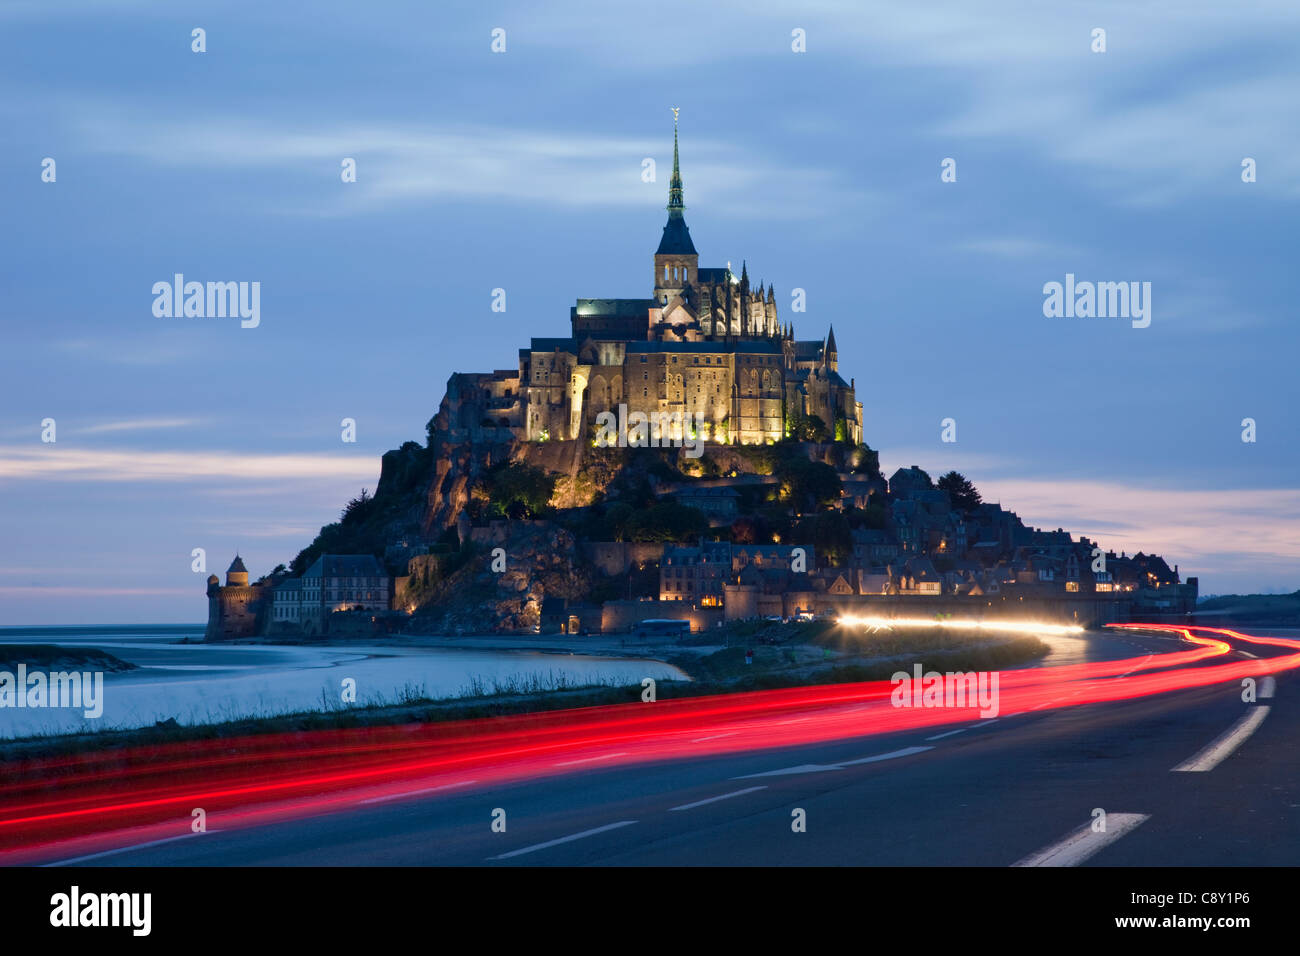 France, Normandy, Mont St.Michel - Stock Image